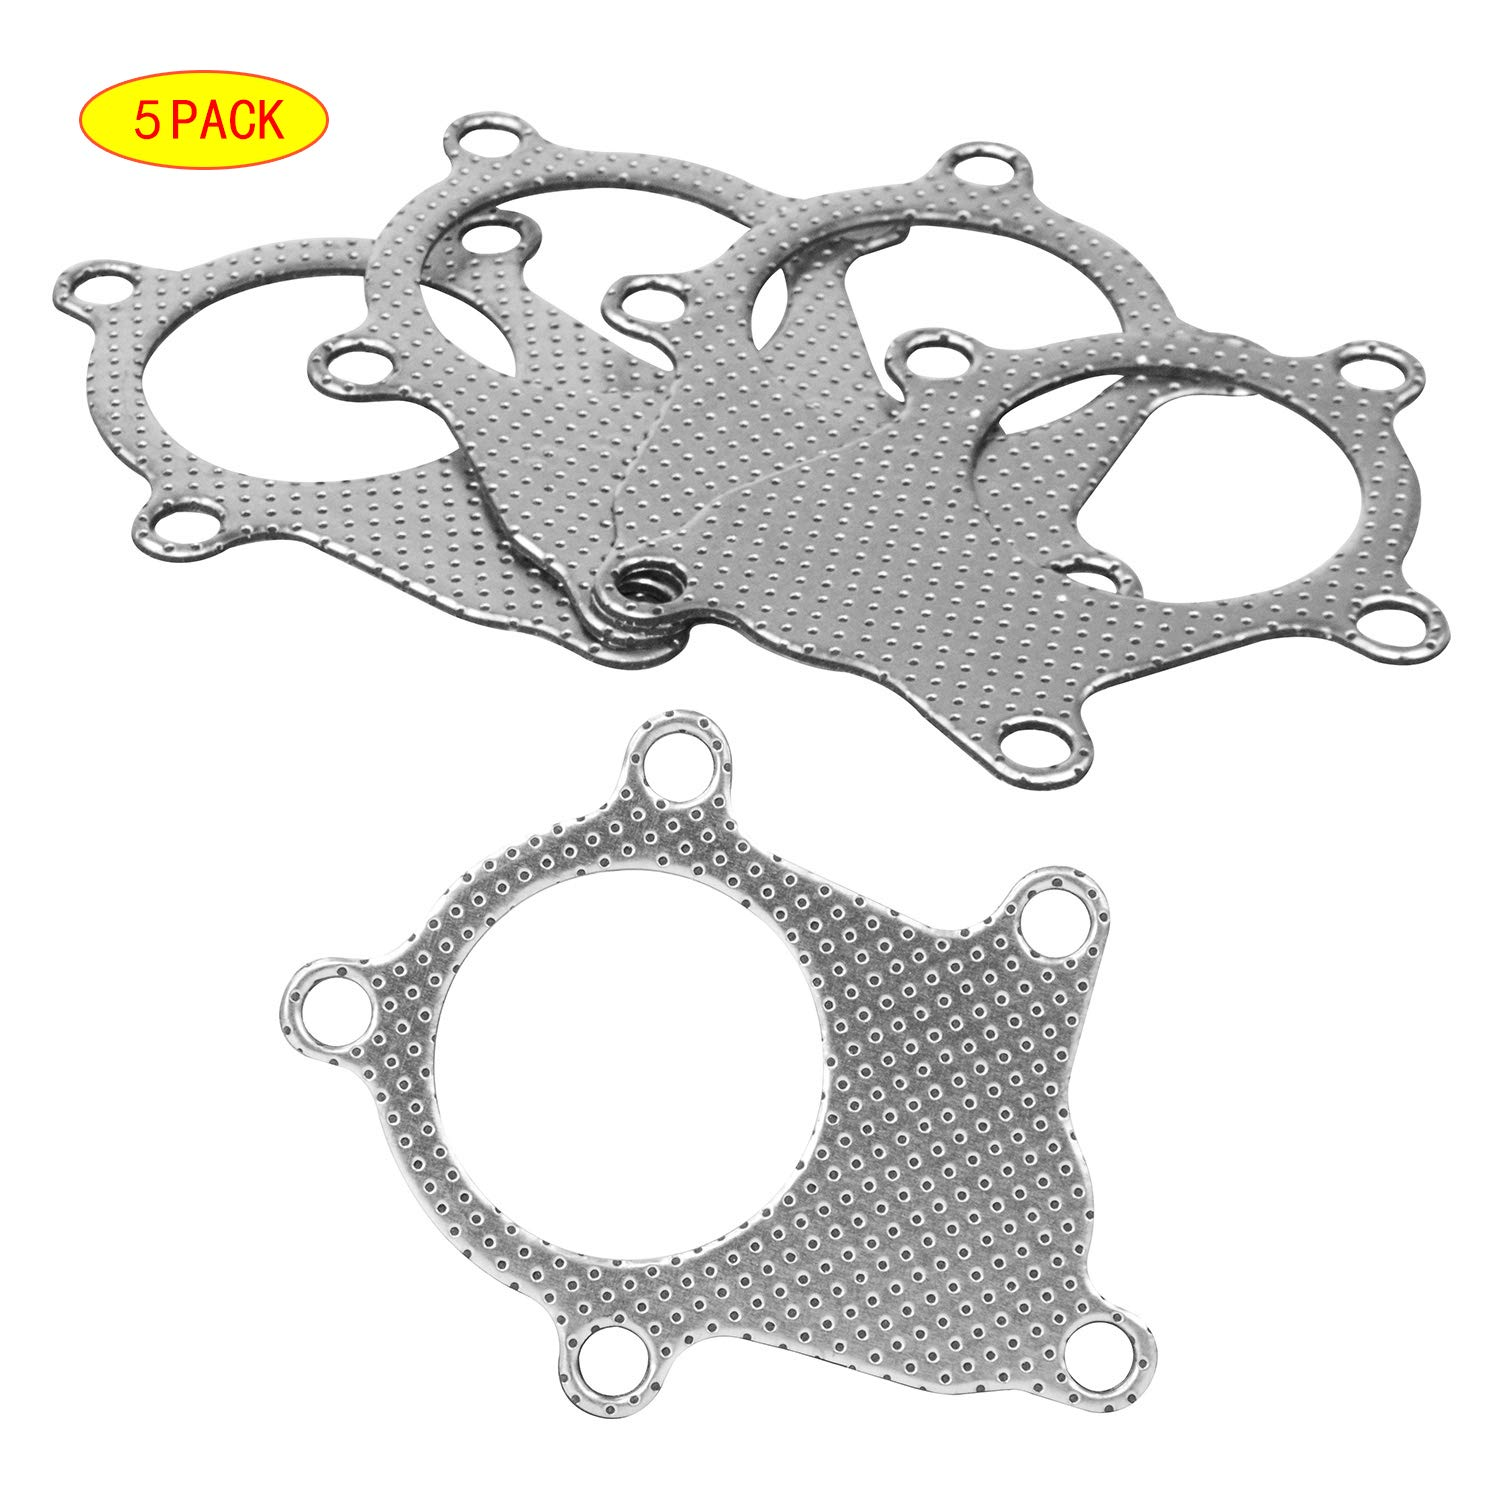 PTNHZ 5 Pcs Graphite Aluminum Turbo Charger Inlet Manifold Flange Down Pipe Gasket for T4